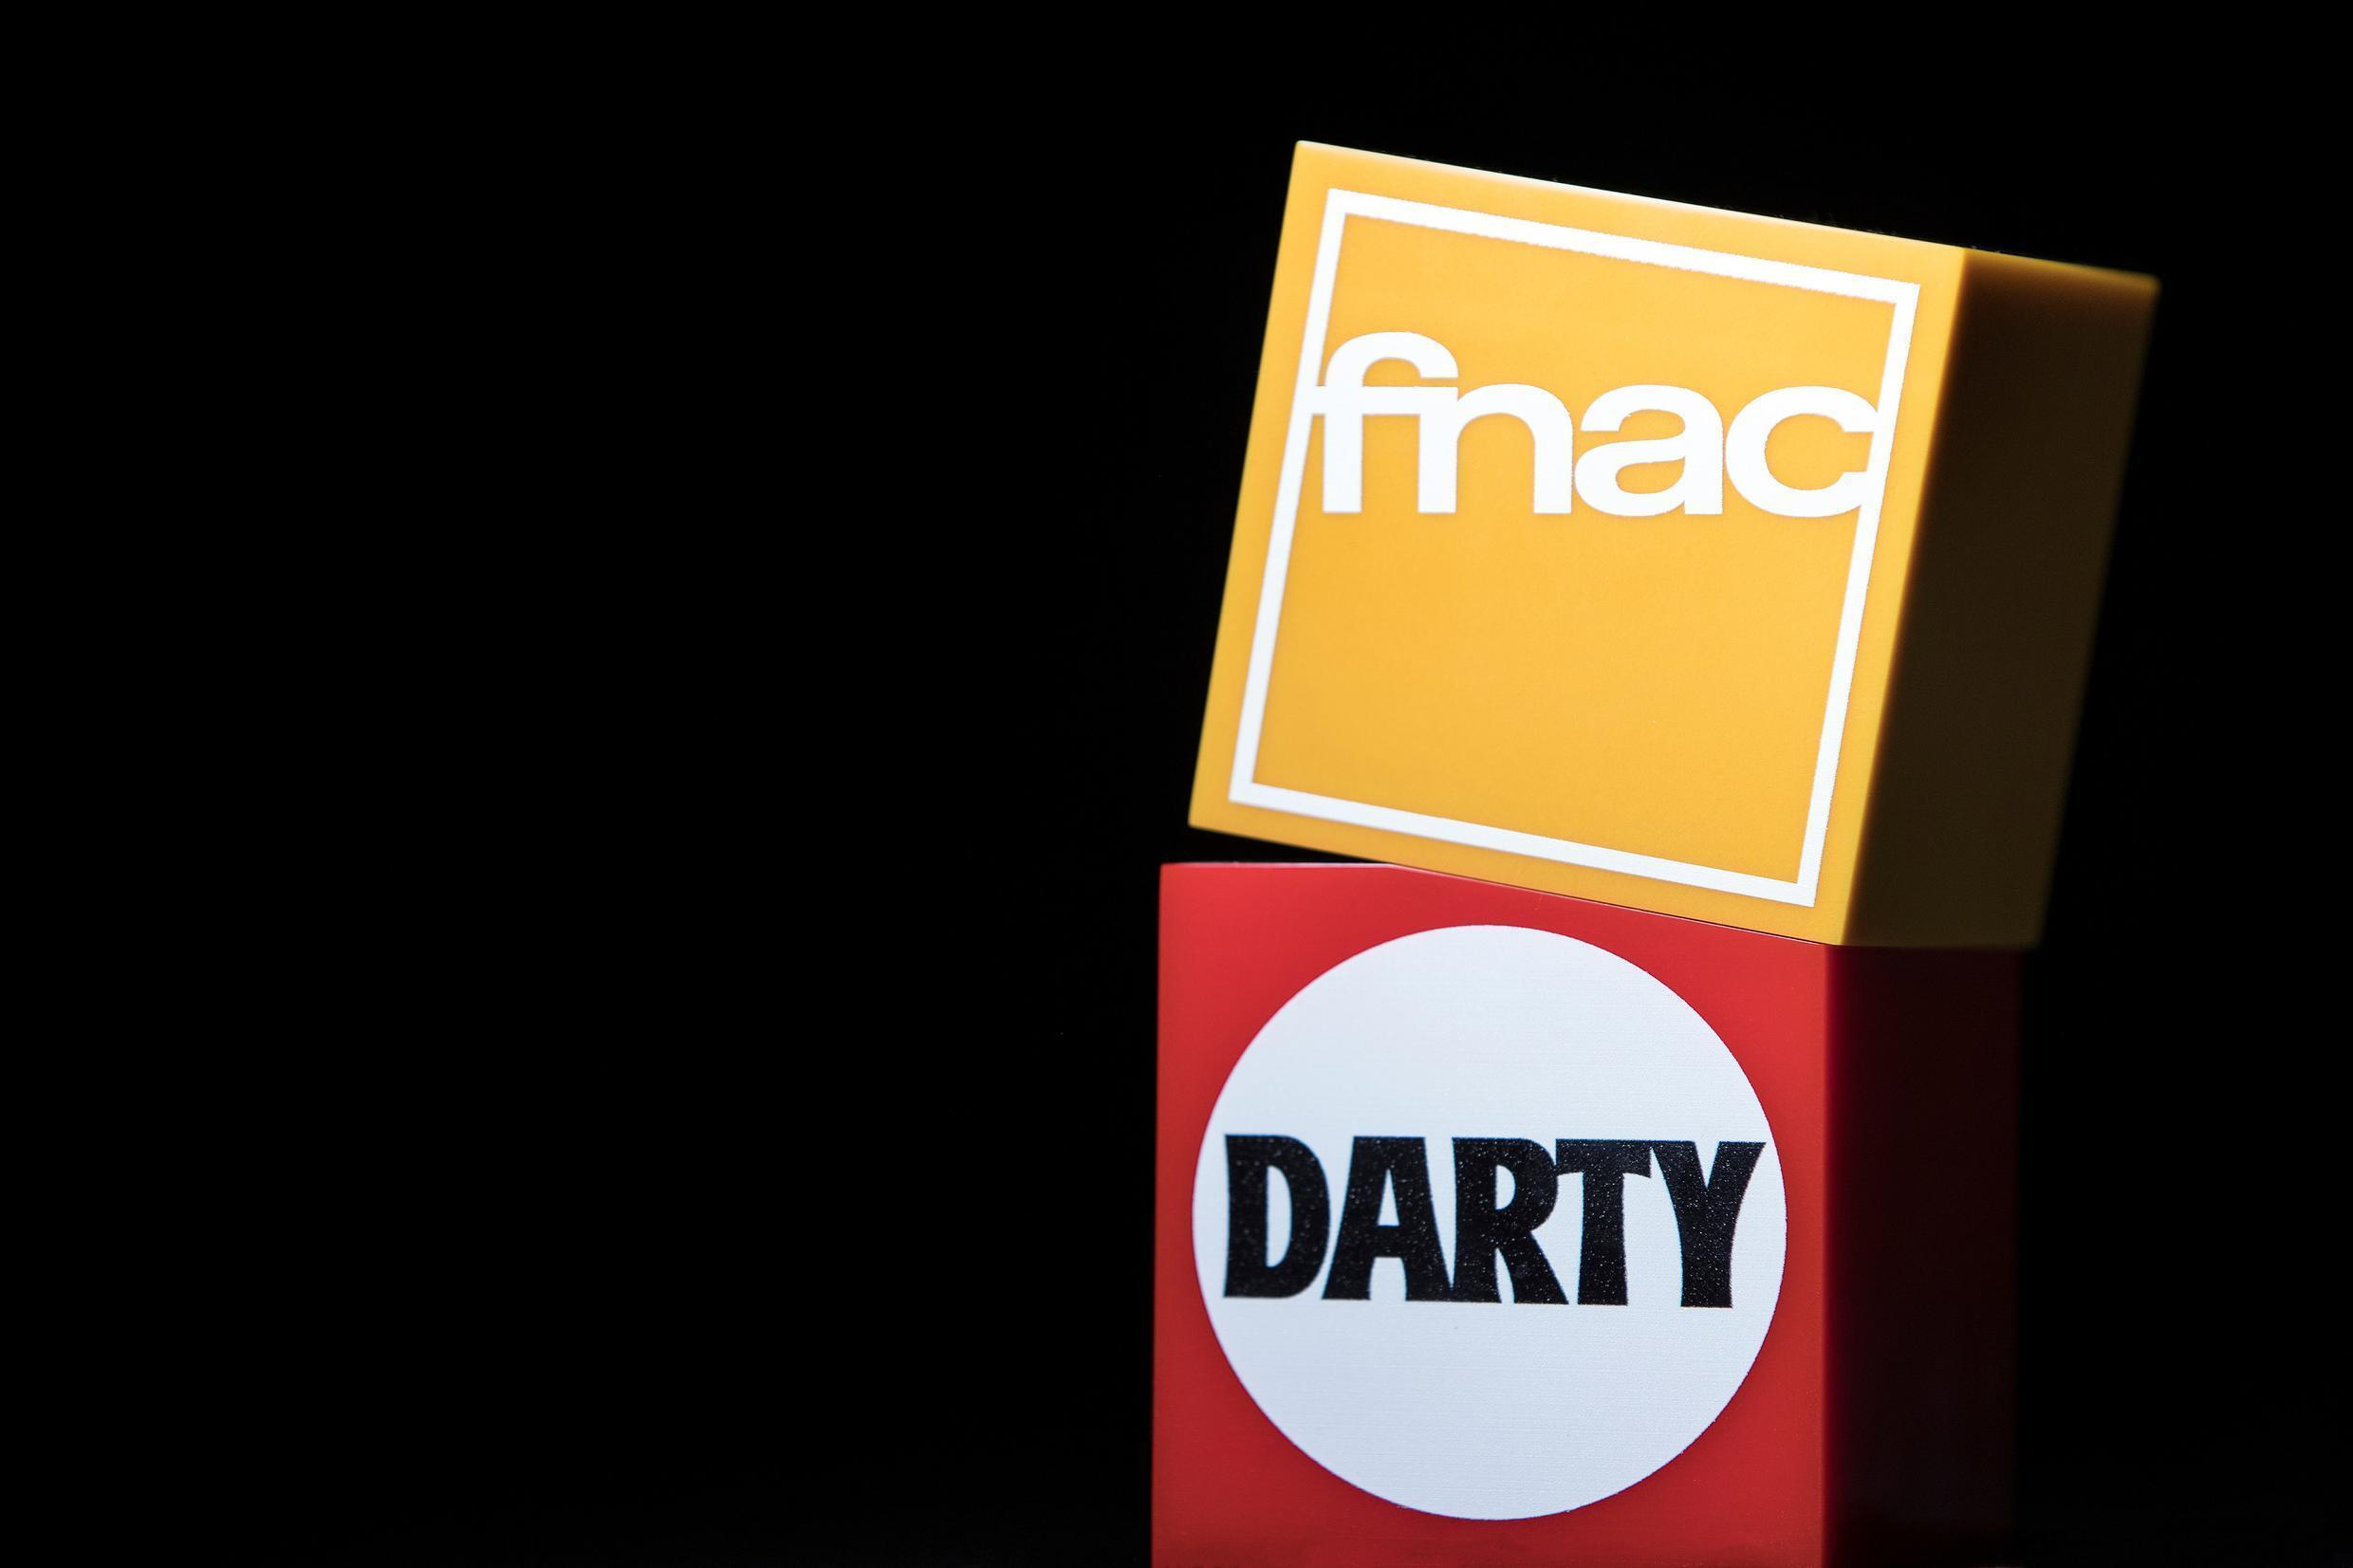 Fnac-Darty is the first major company to benefit from a French government-backed loan aimed at economic recovery following the coronavirus crisis.